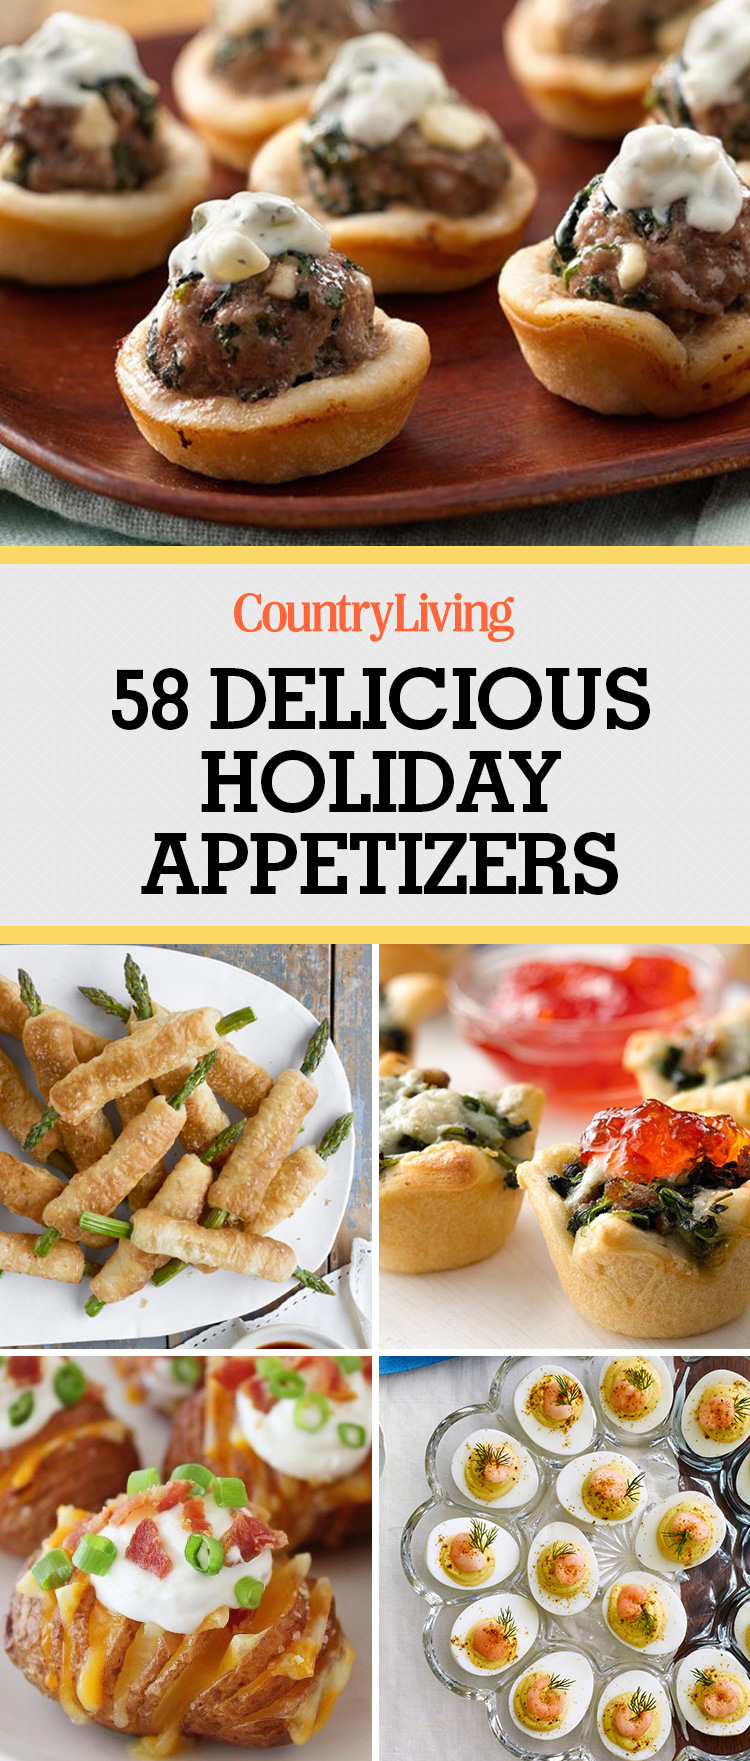 60+ Easy Thanksgiving And Christmas Appetizer Recipes